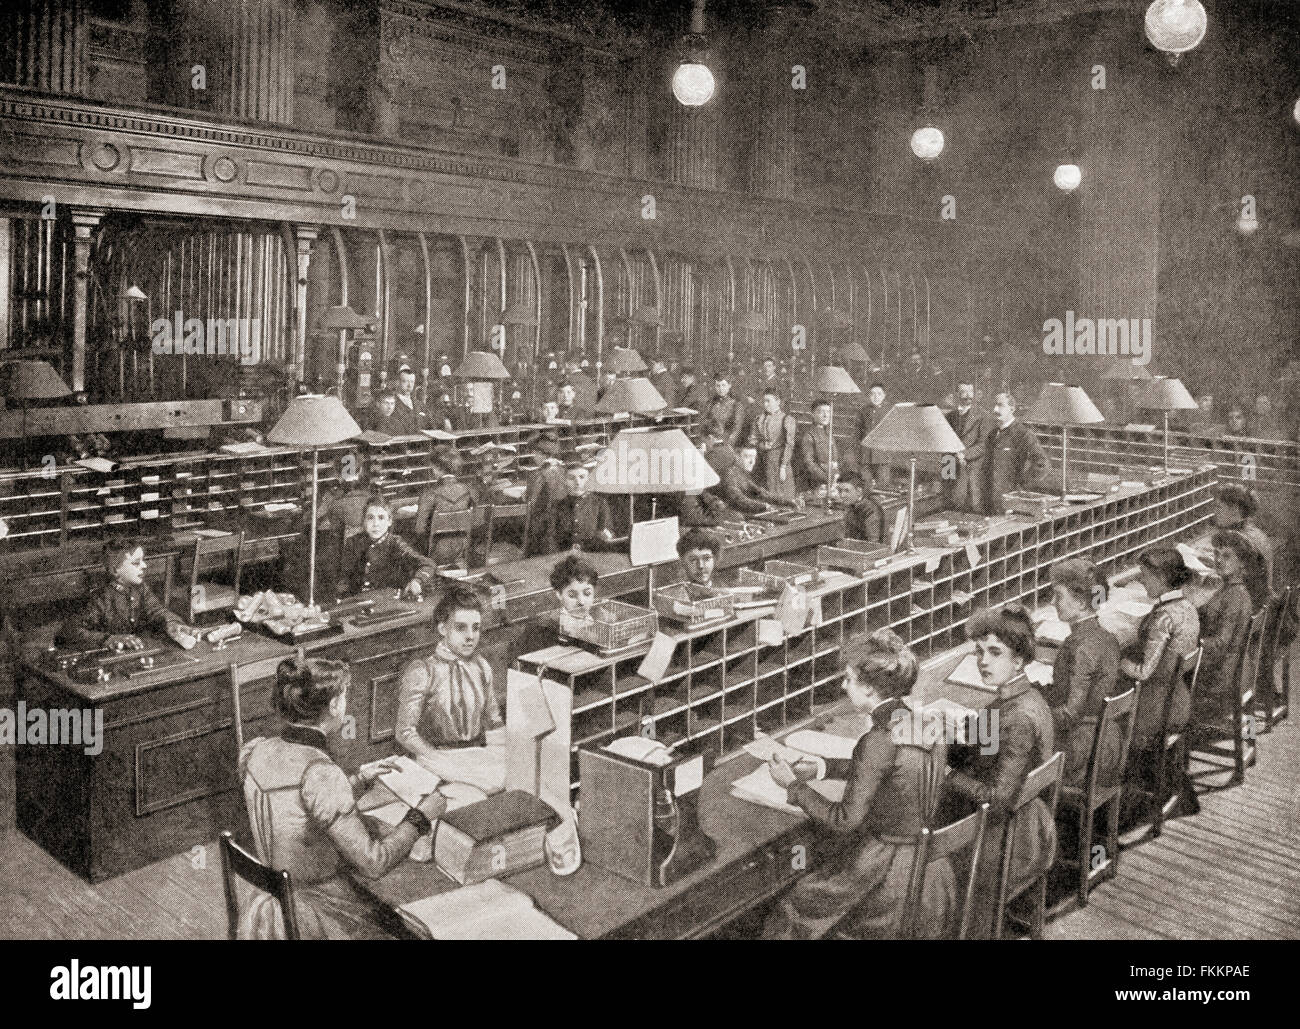 The pneumatic tube room in the The Central Telegraph Office, St Martin's Le Grand, London, England in the late 19th - Stock Image